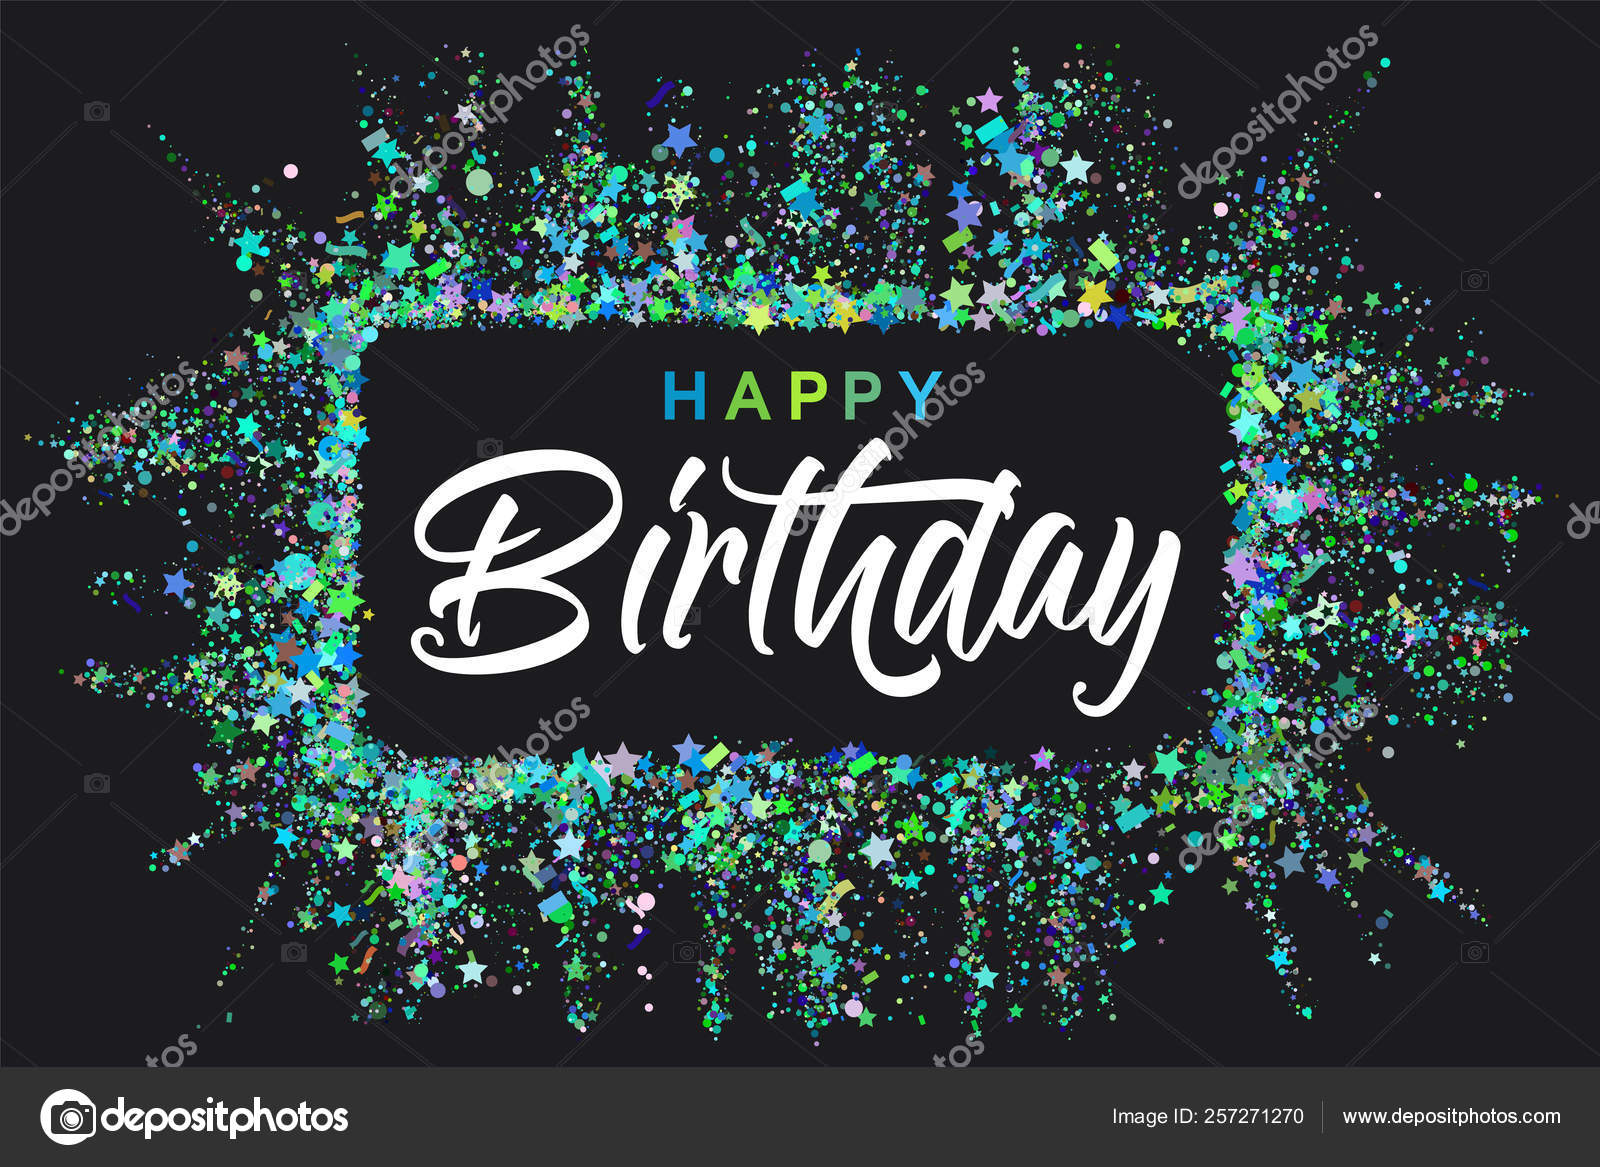 Happy Birthday typography design for greeting cards and